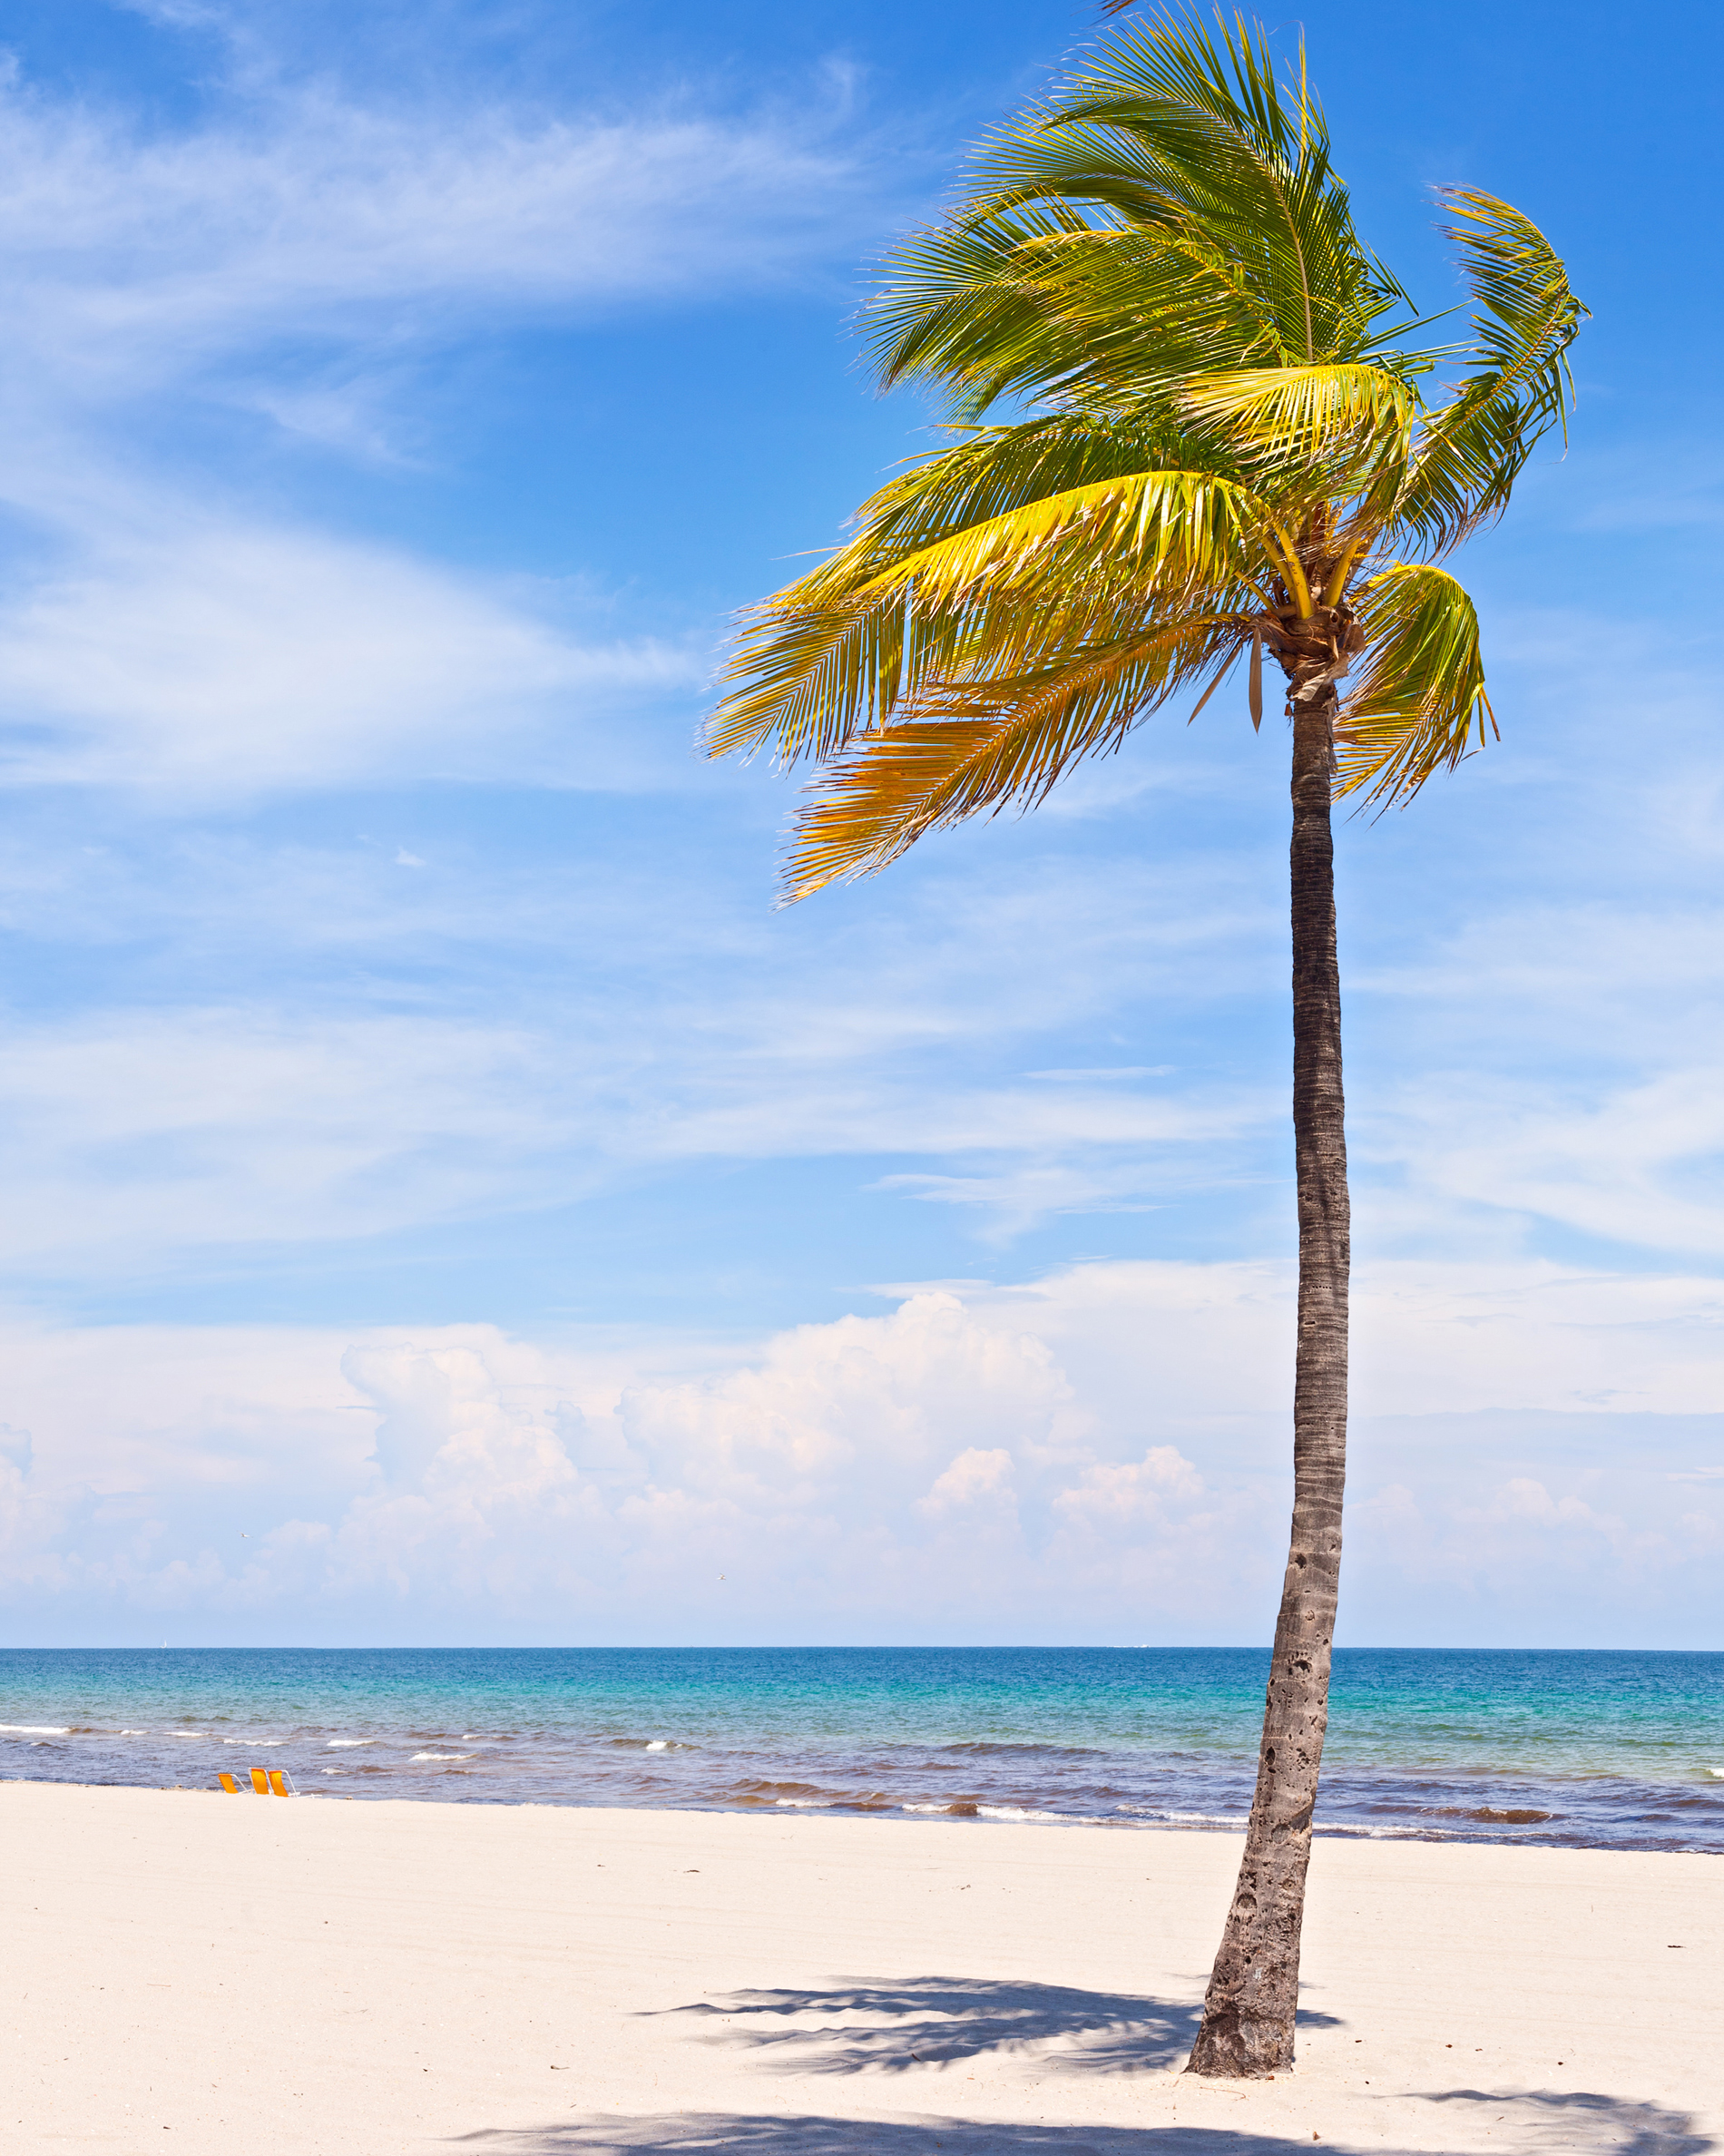 Beach coconut trees swaying in the wind 52775